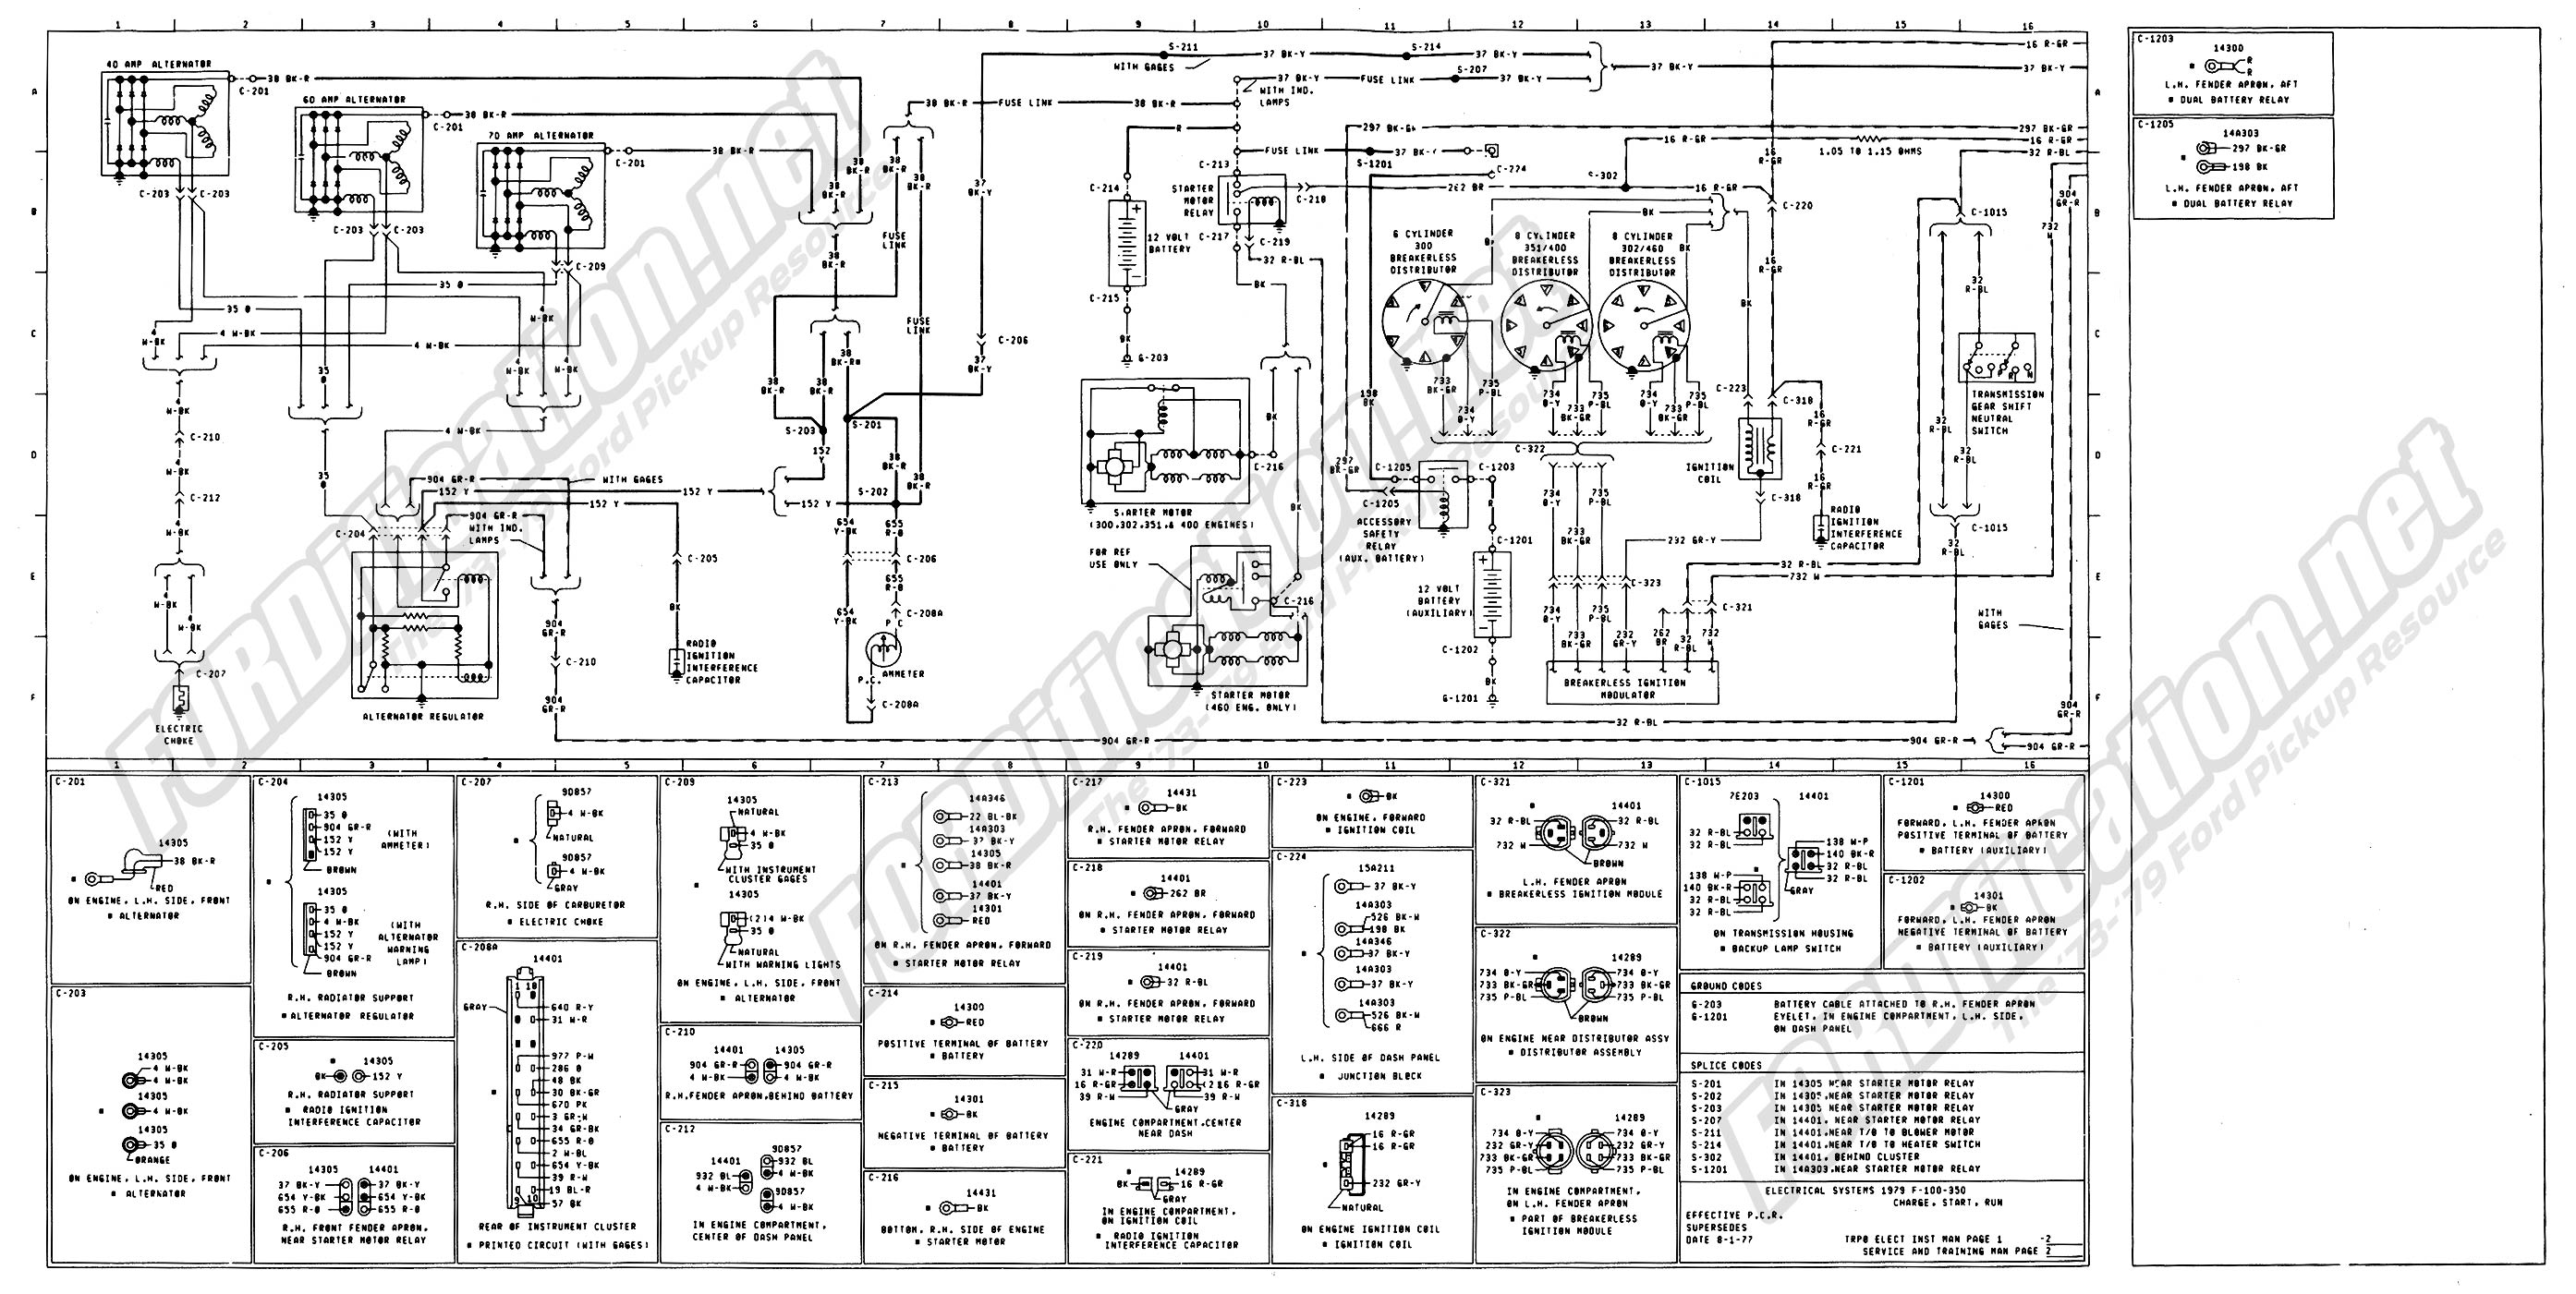 wiring_79master_2of9 1973 1979 ford truck wiring diagrams & schematics fordification net 1999 F150 Radio Wiring Diagram at soozxer.org